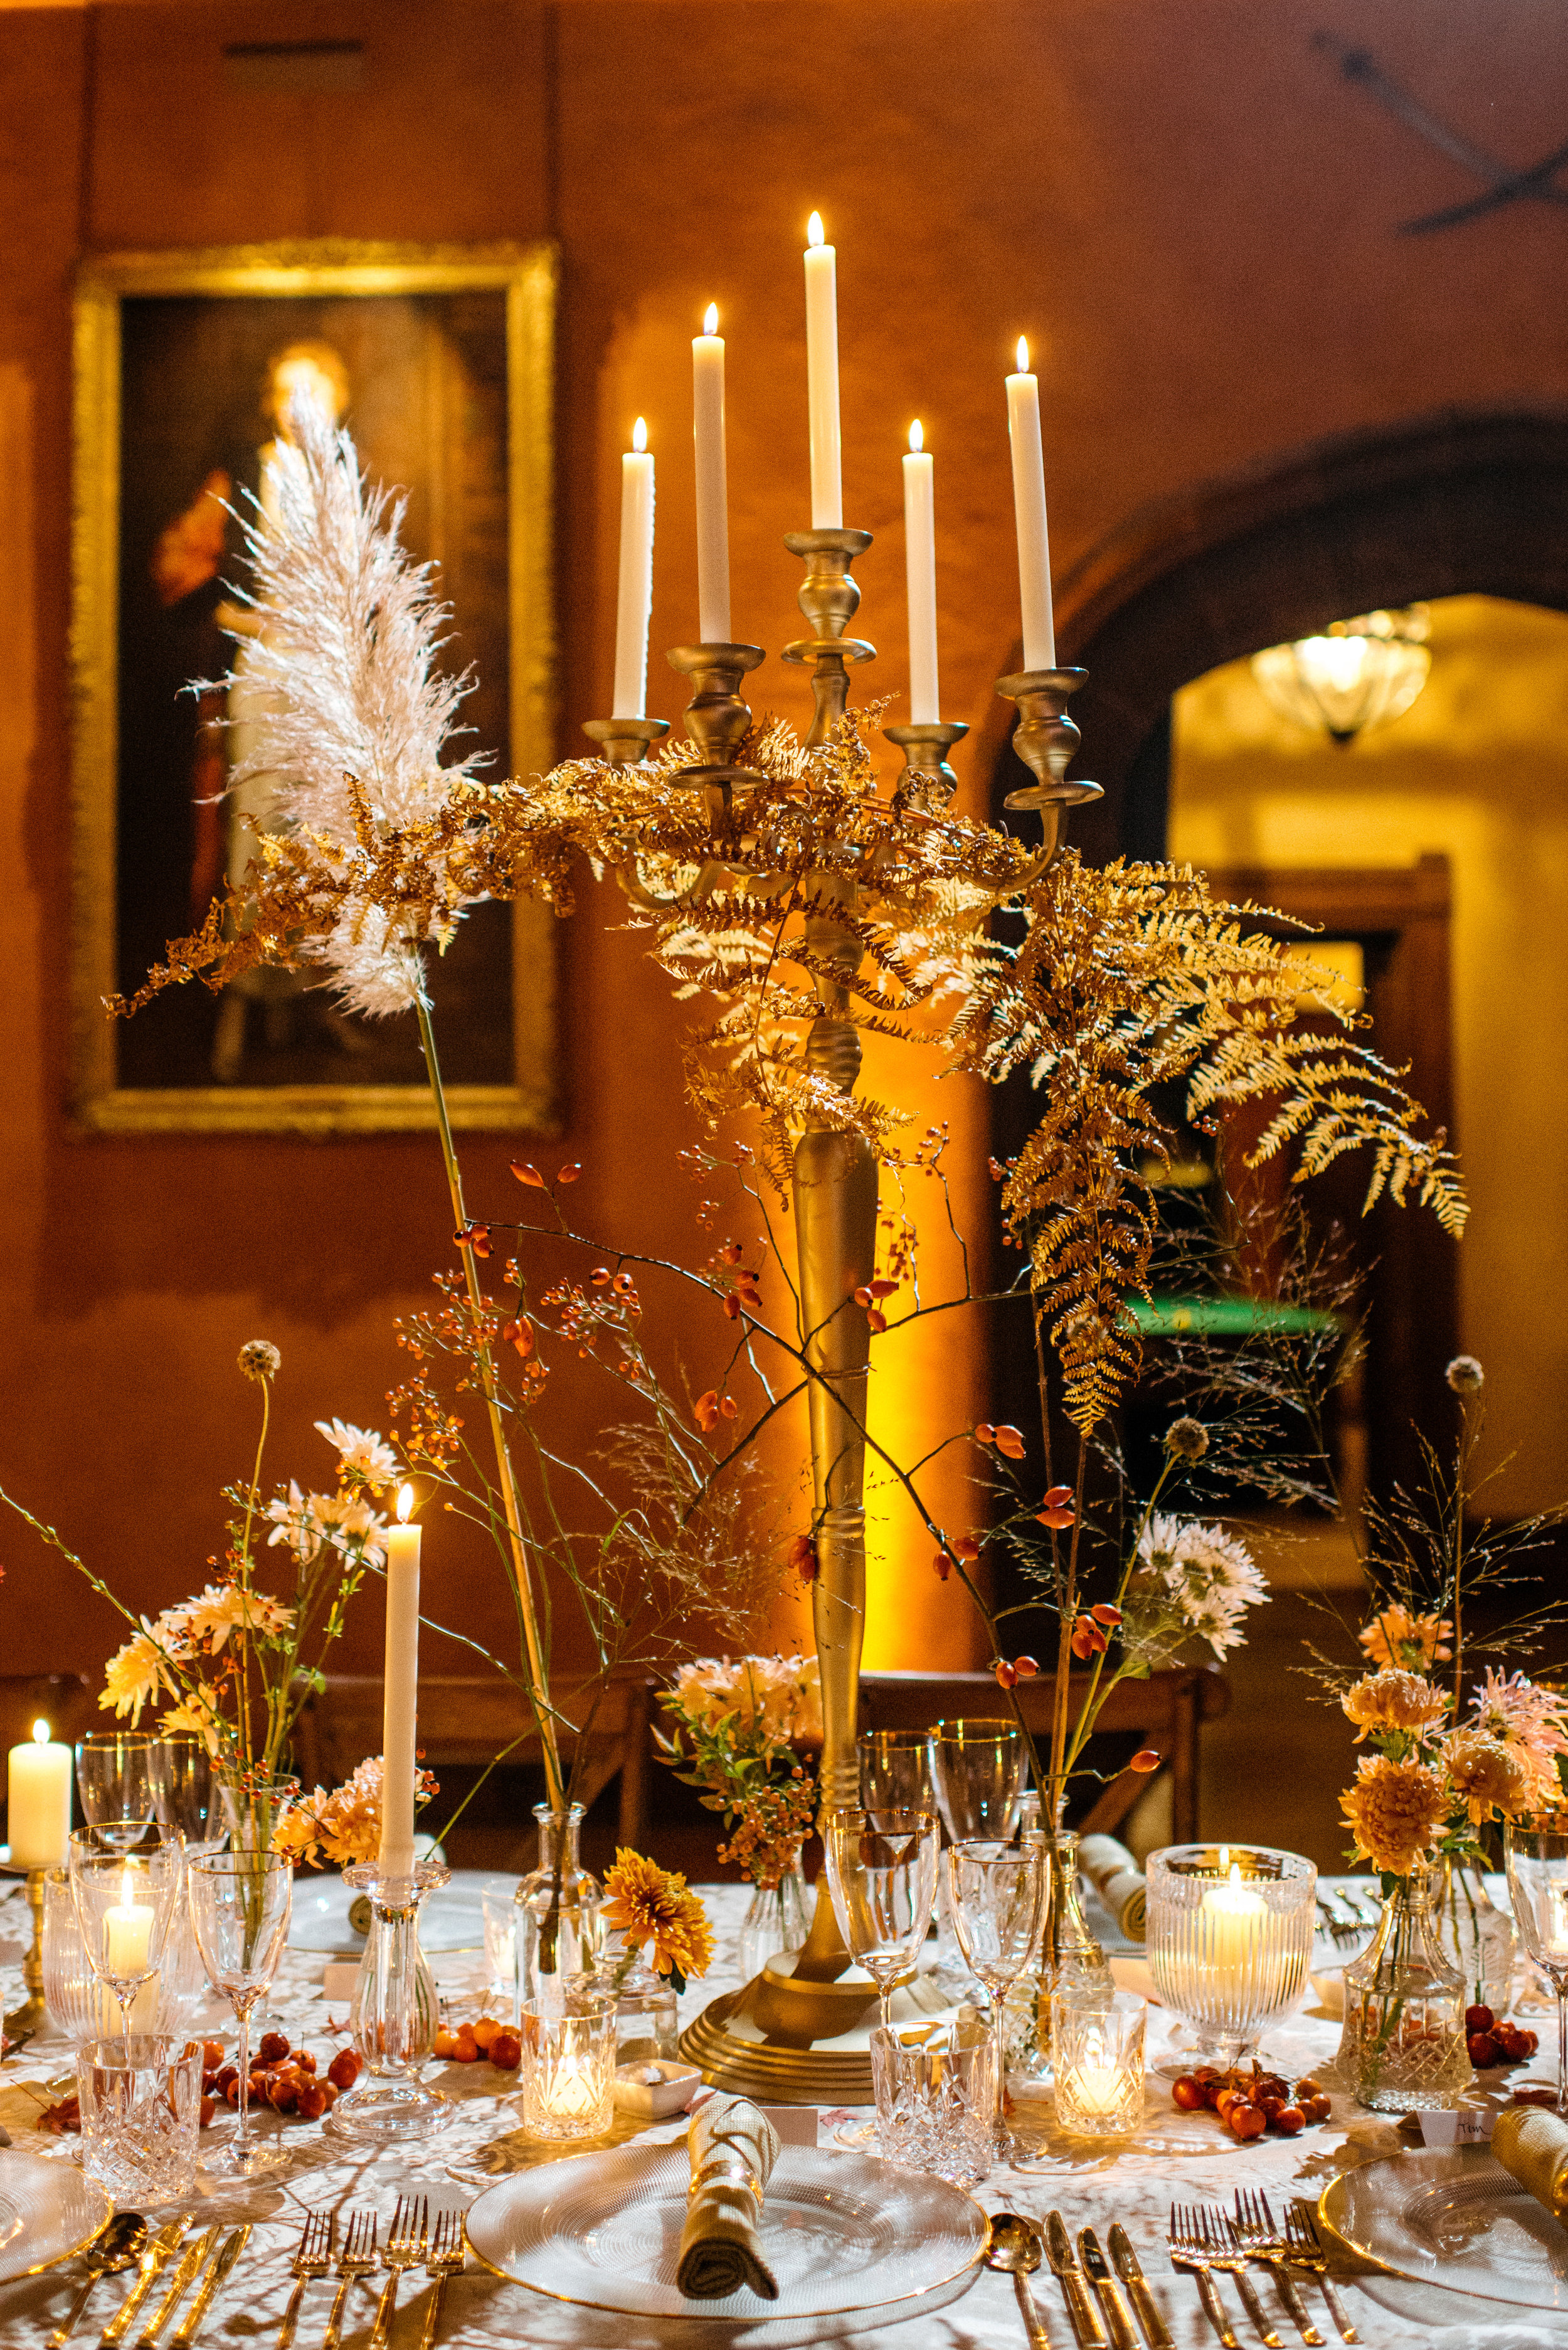 Autumn Dinner at Cowdray House by This Floral Life